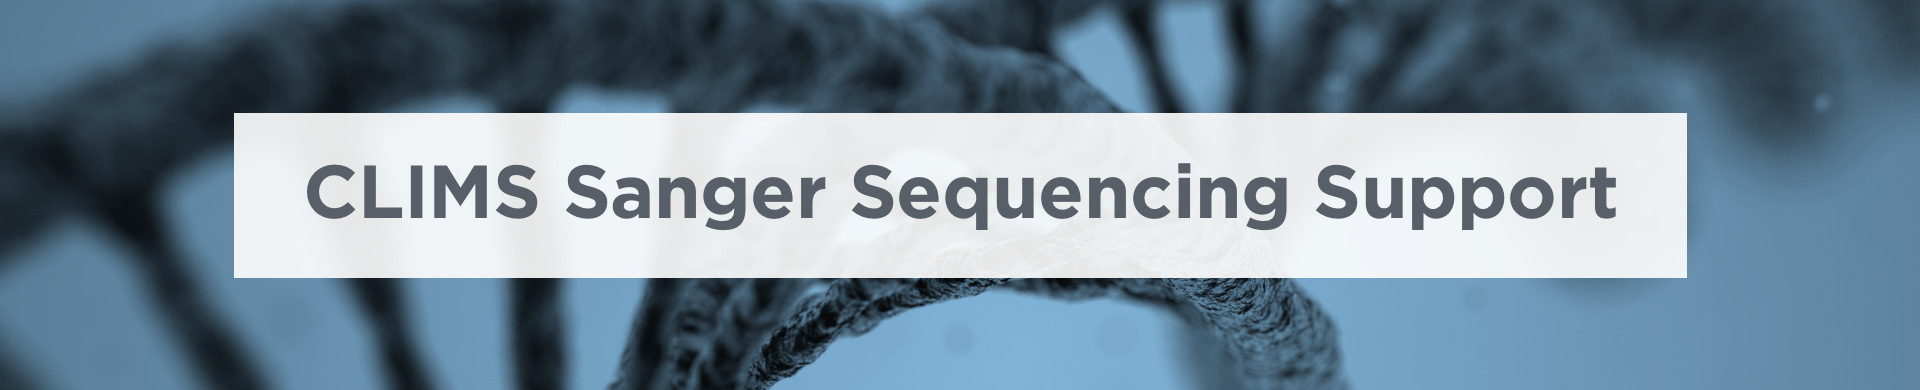 CLIMS_Sanger_Sequencing_Support_landing_hero_august24_2018